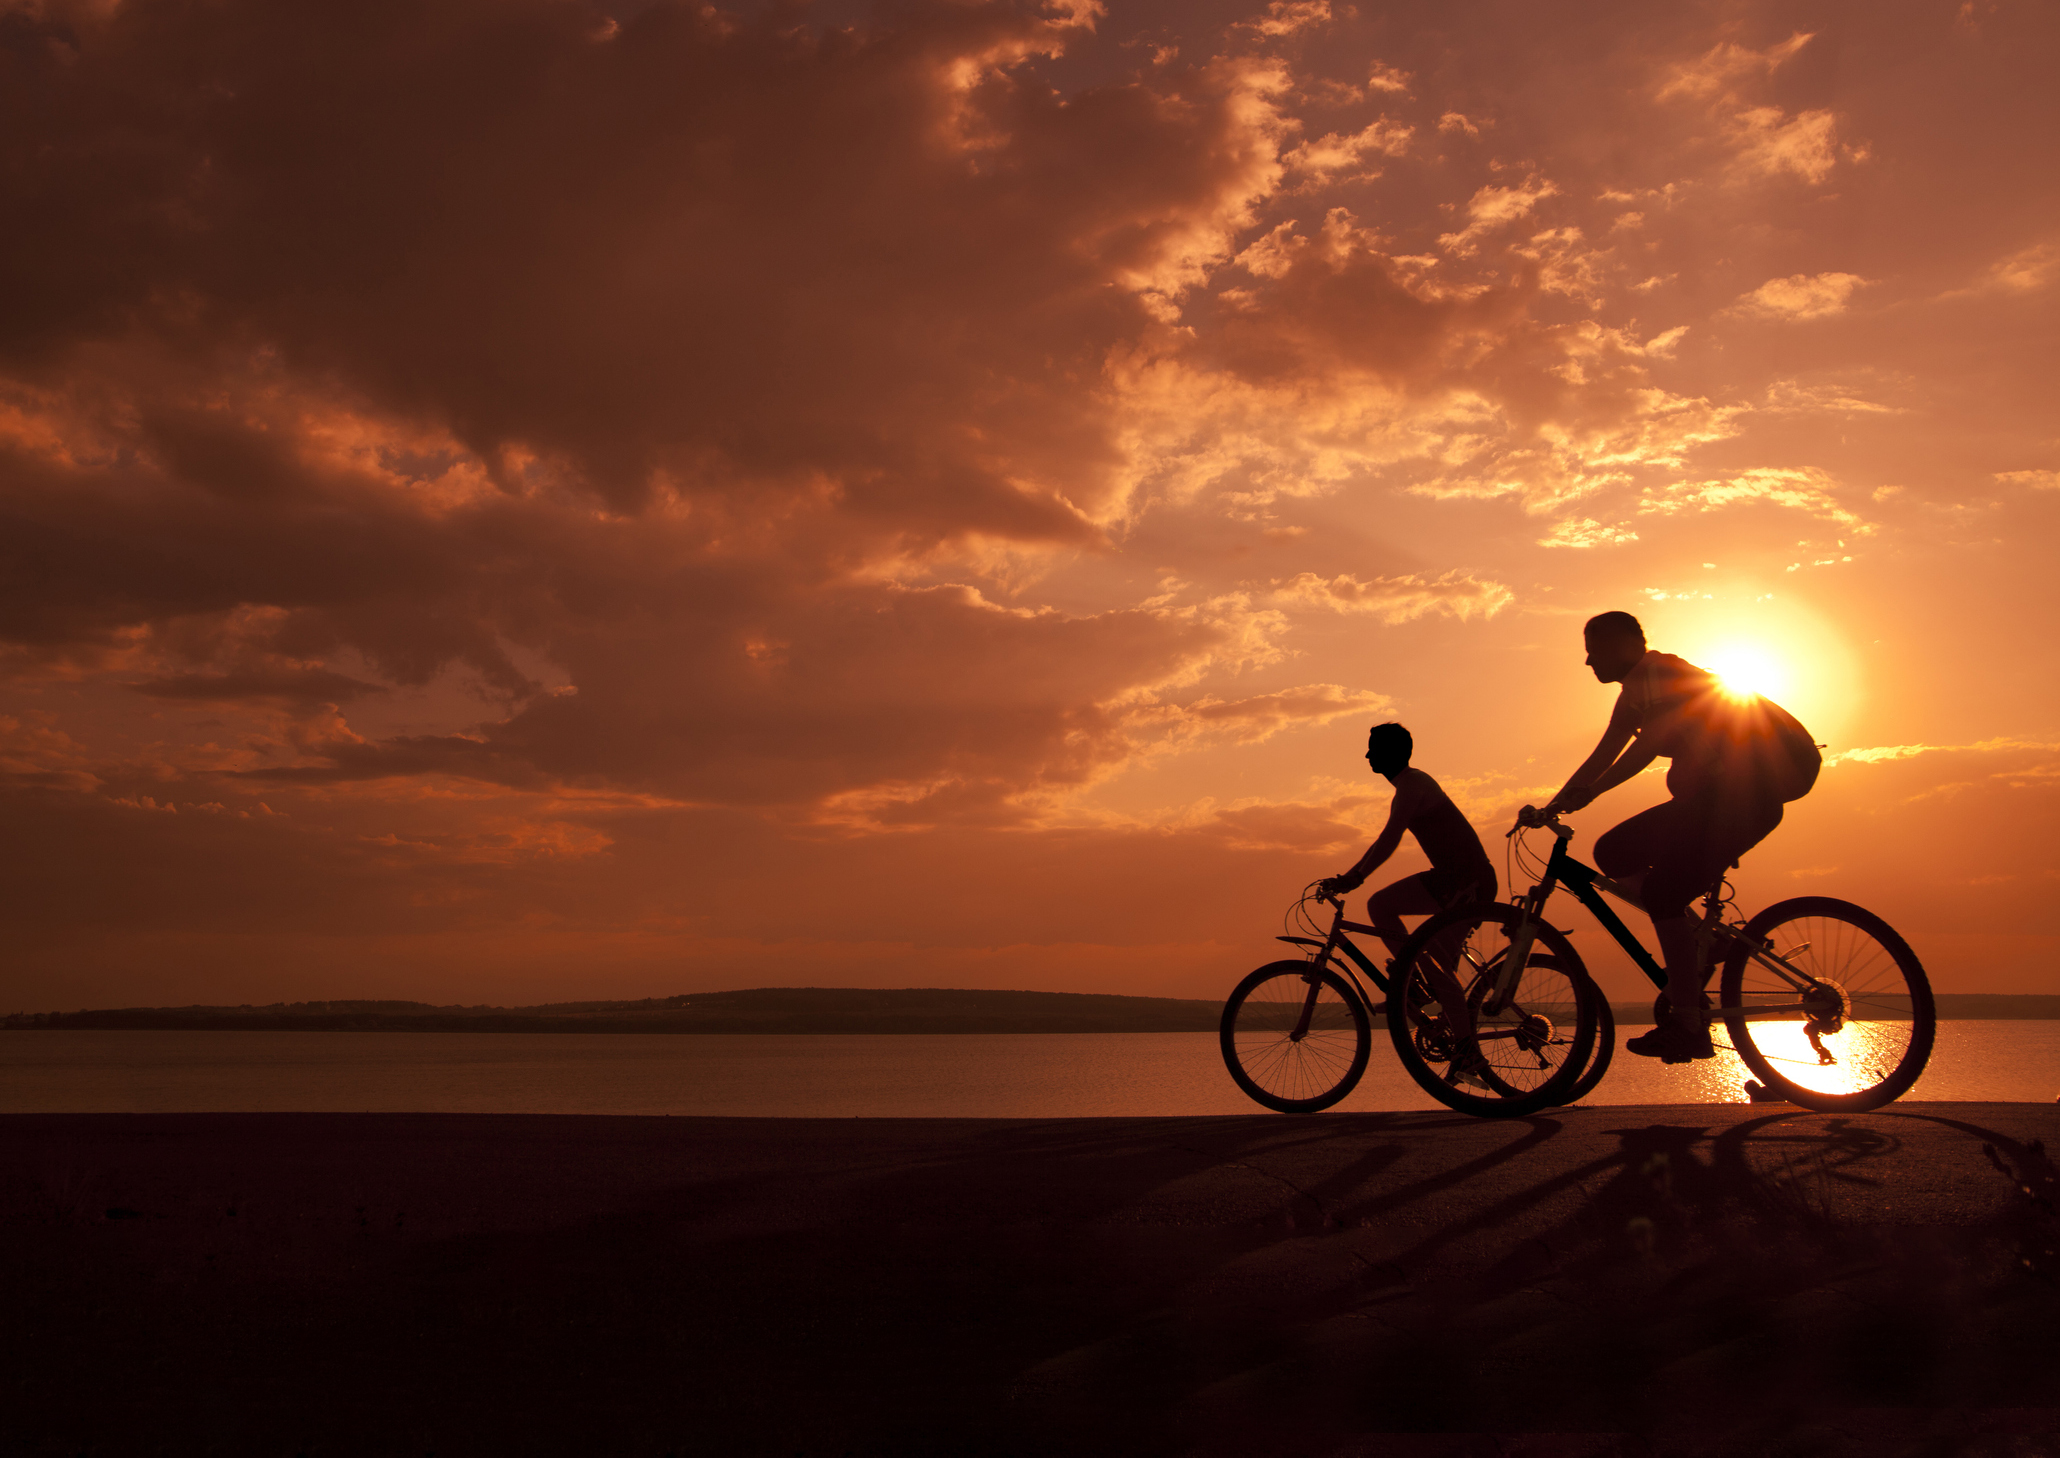 A pair of riders during sunset.